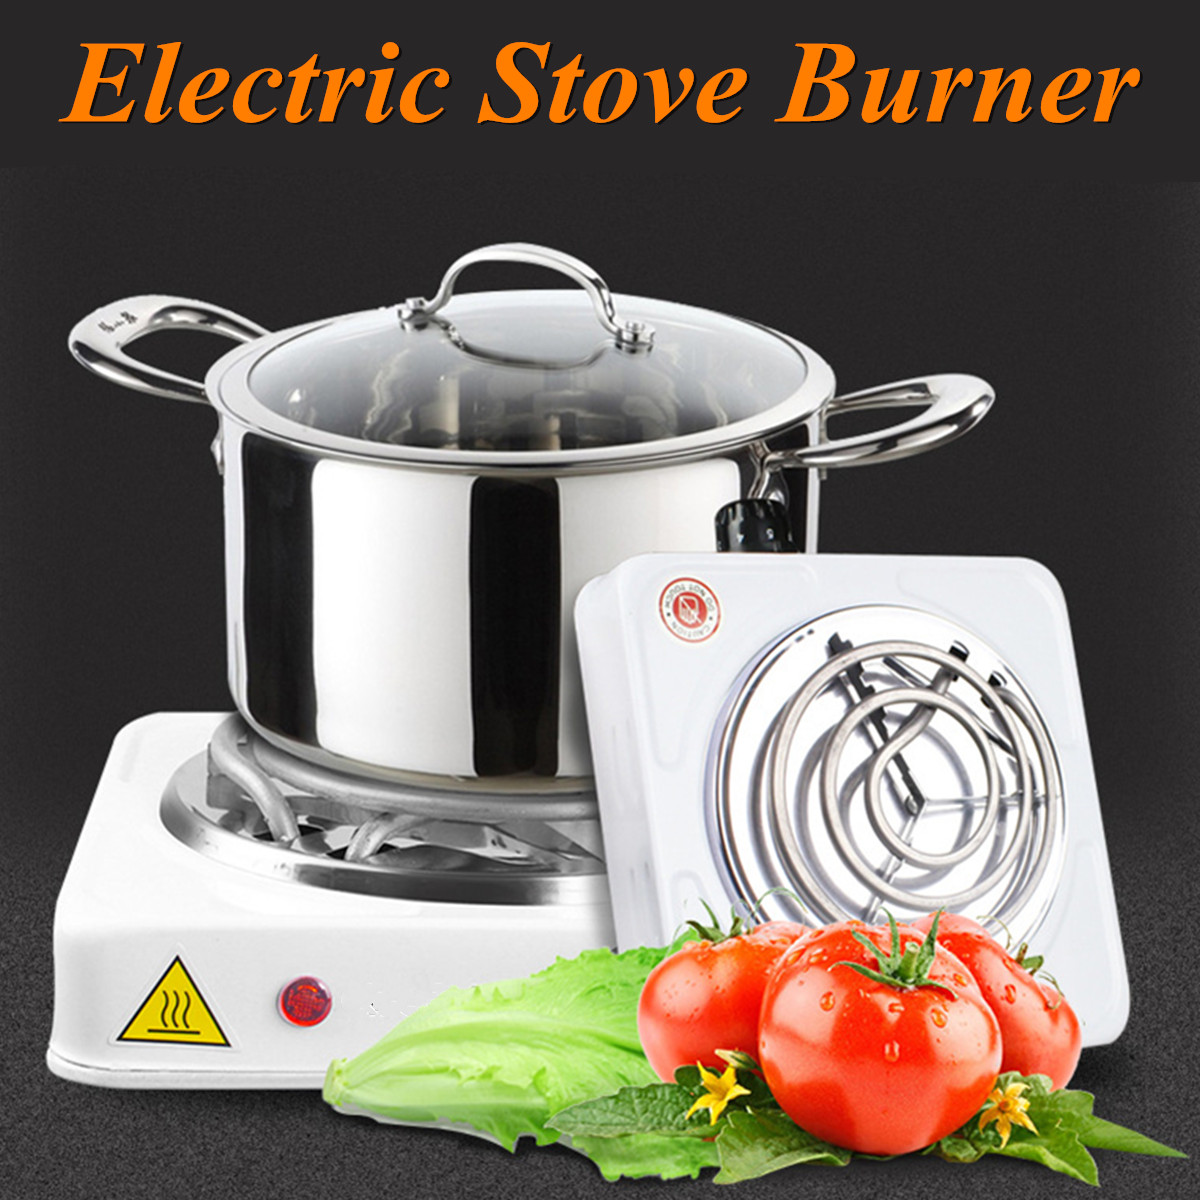 Electric Stove Hot Plate 1000W Iron Burner Portable Kitchen Cooker Coffee Heater 110-240V Milk Soup Coffee Durable Asjustable